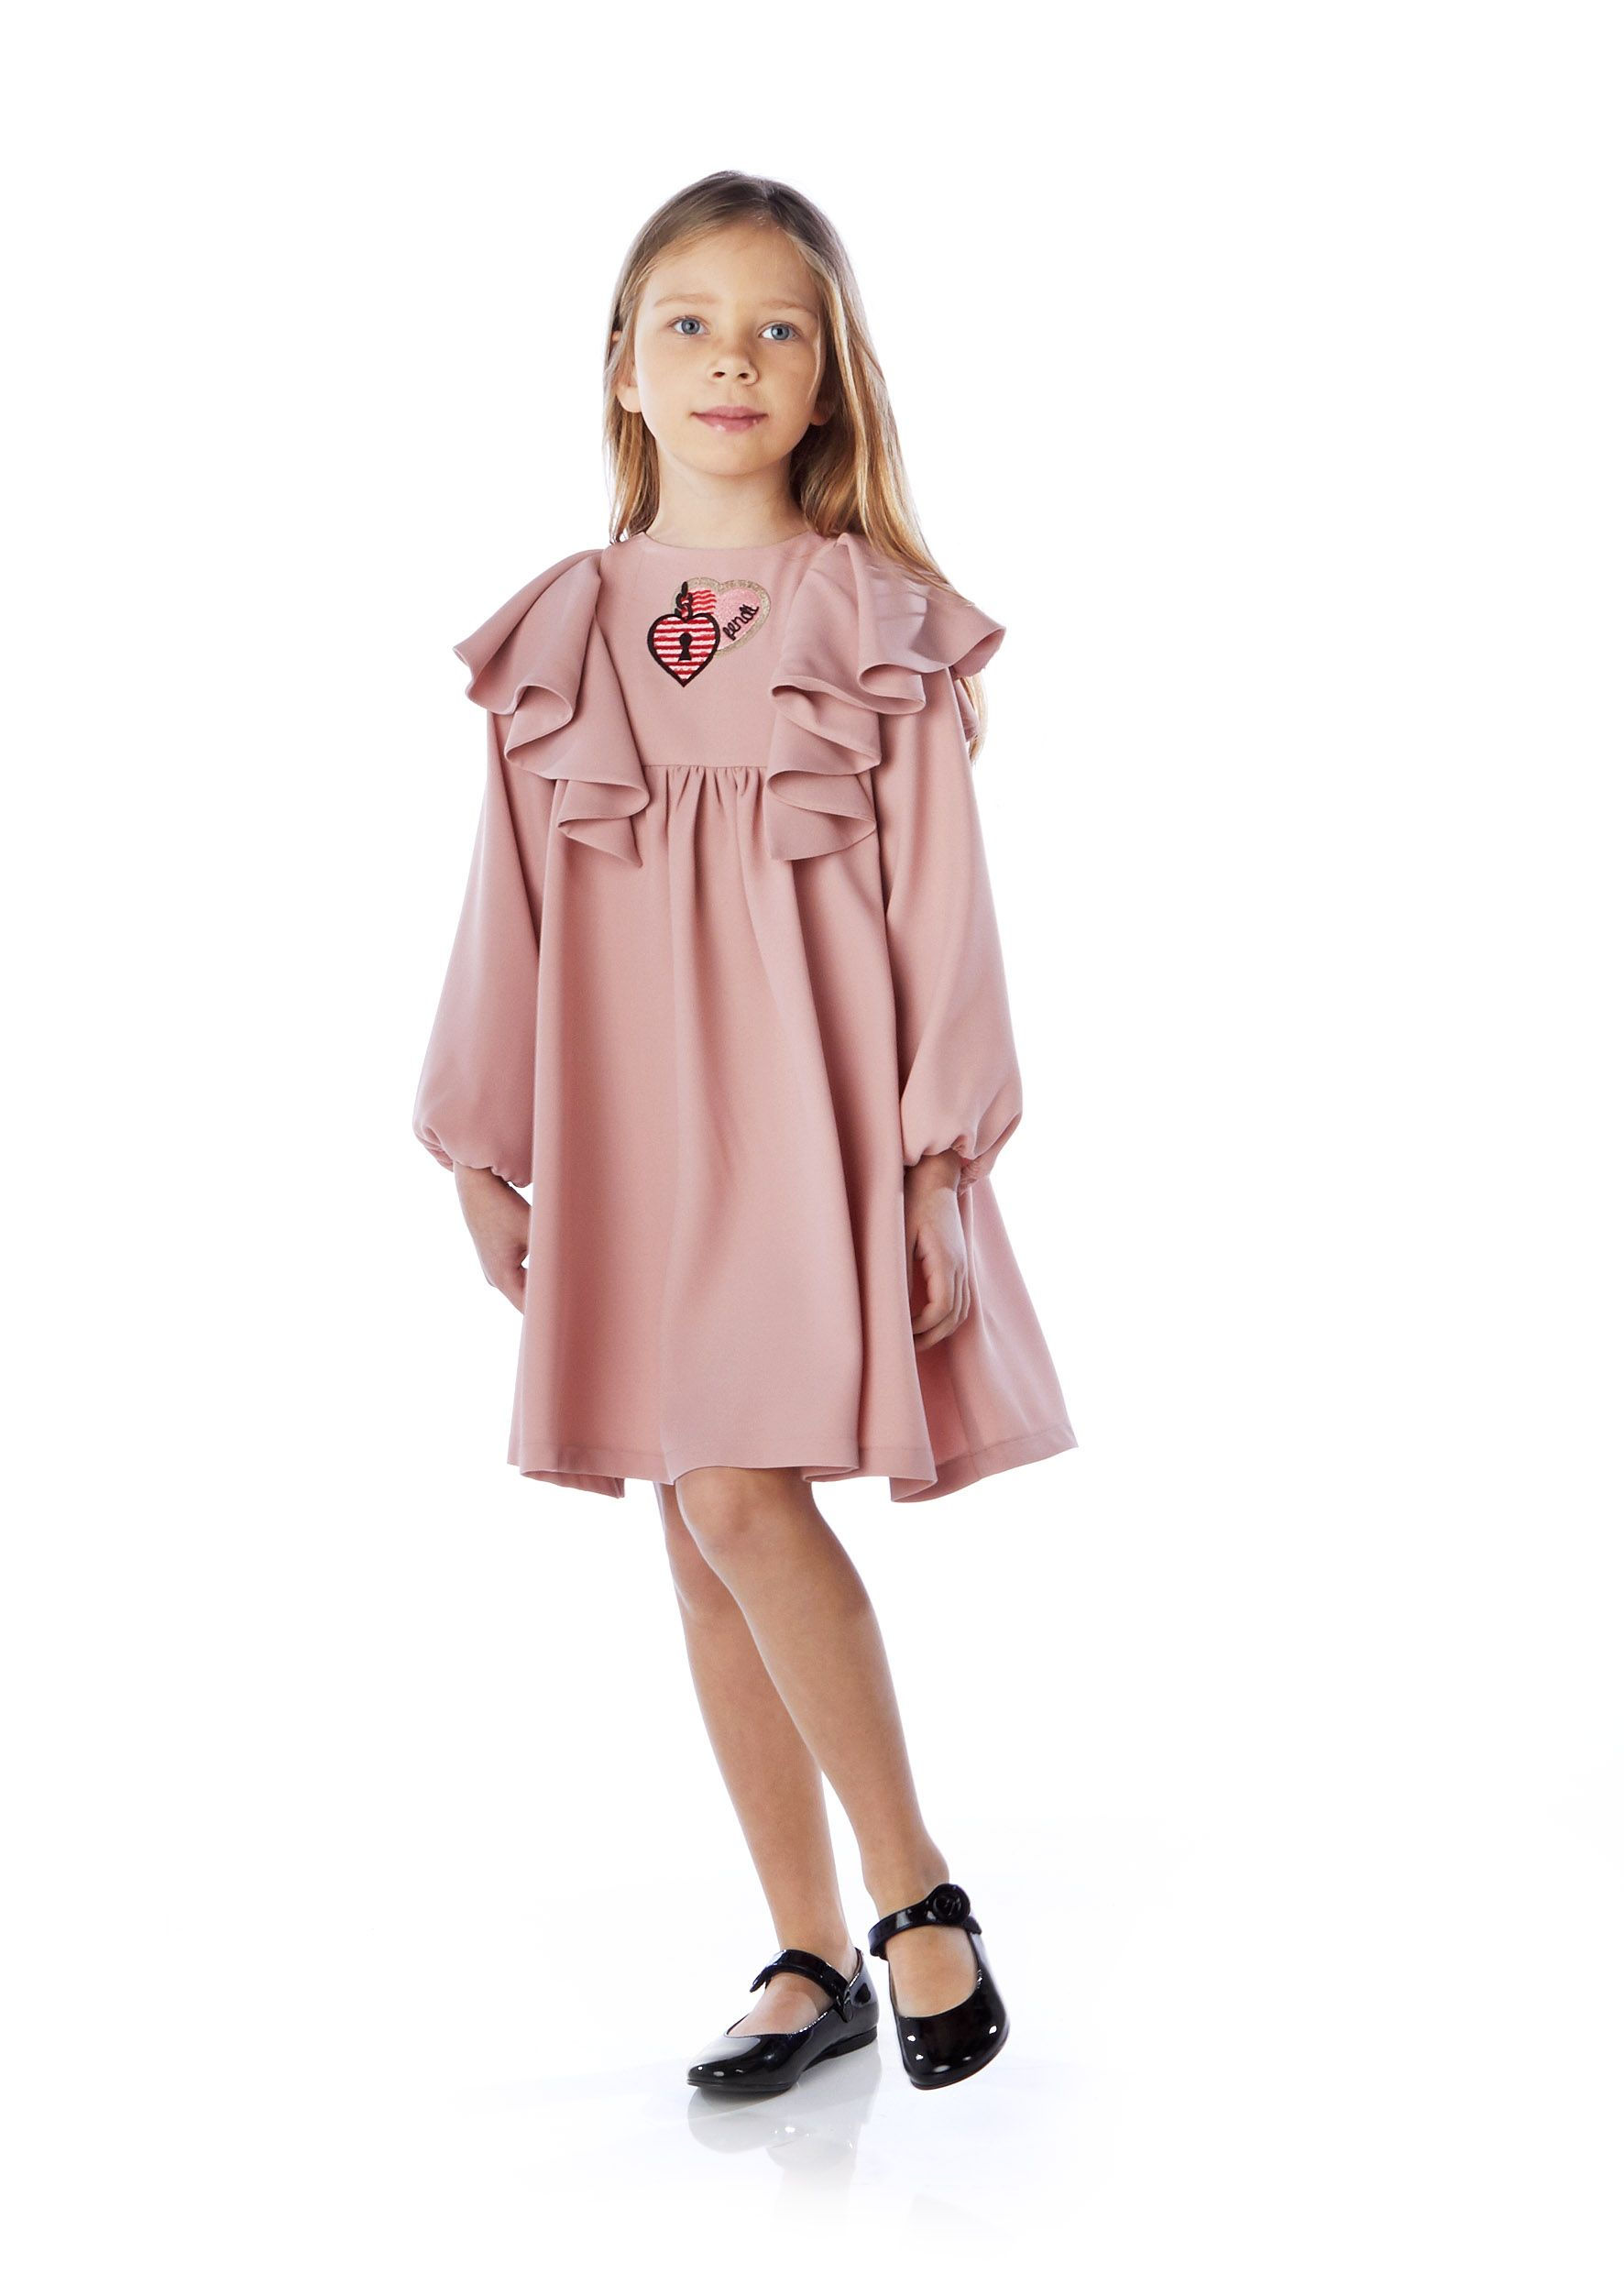 3c95dd877c Fendi Kids Fall/Winter 2018-19 Collection, now in selected boutiques ...